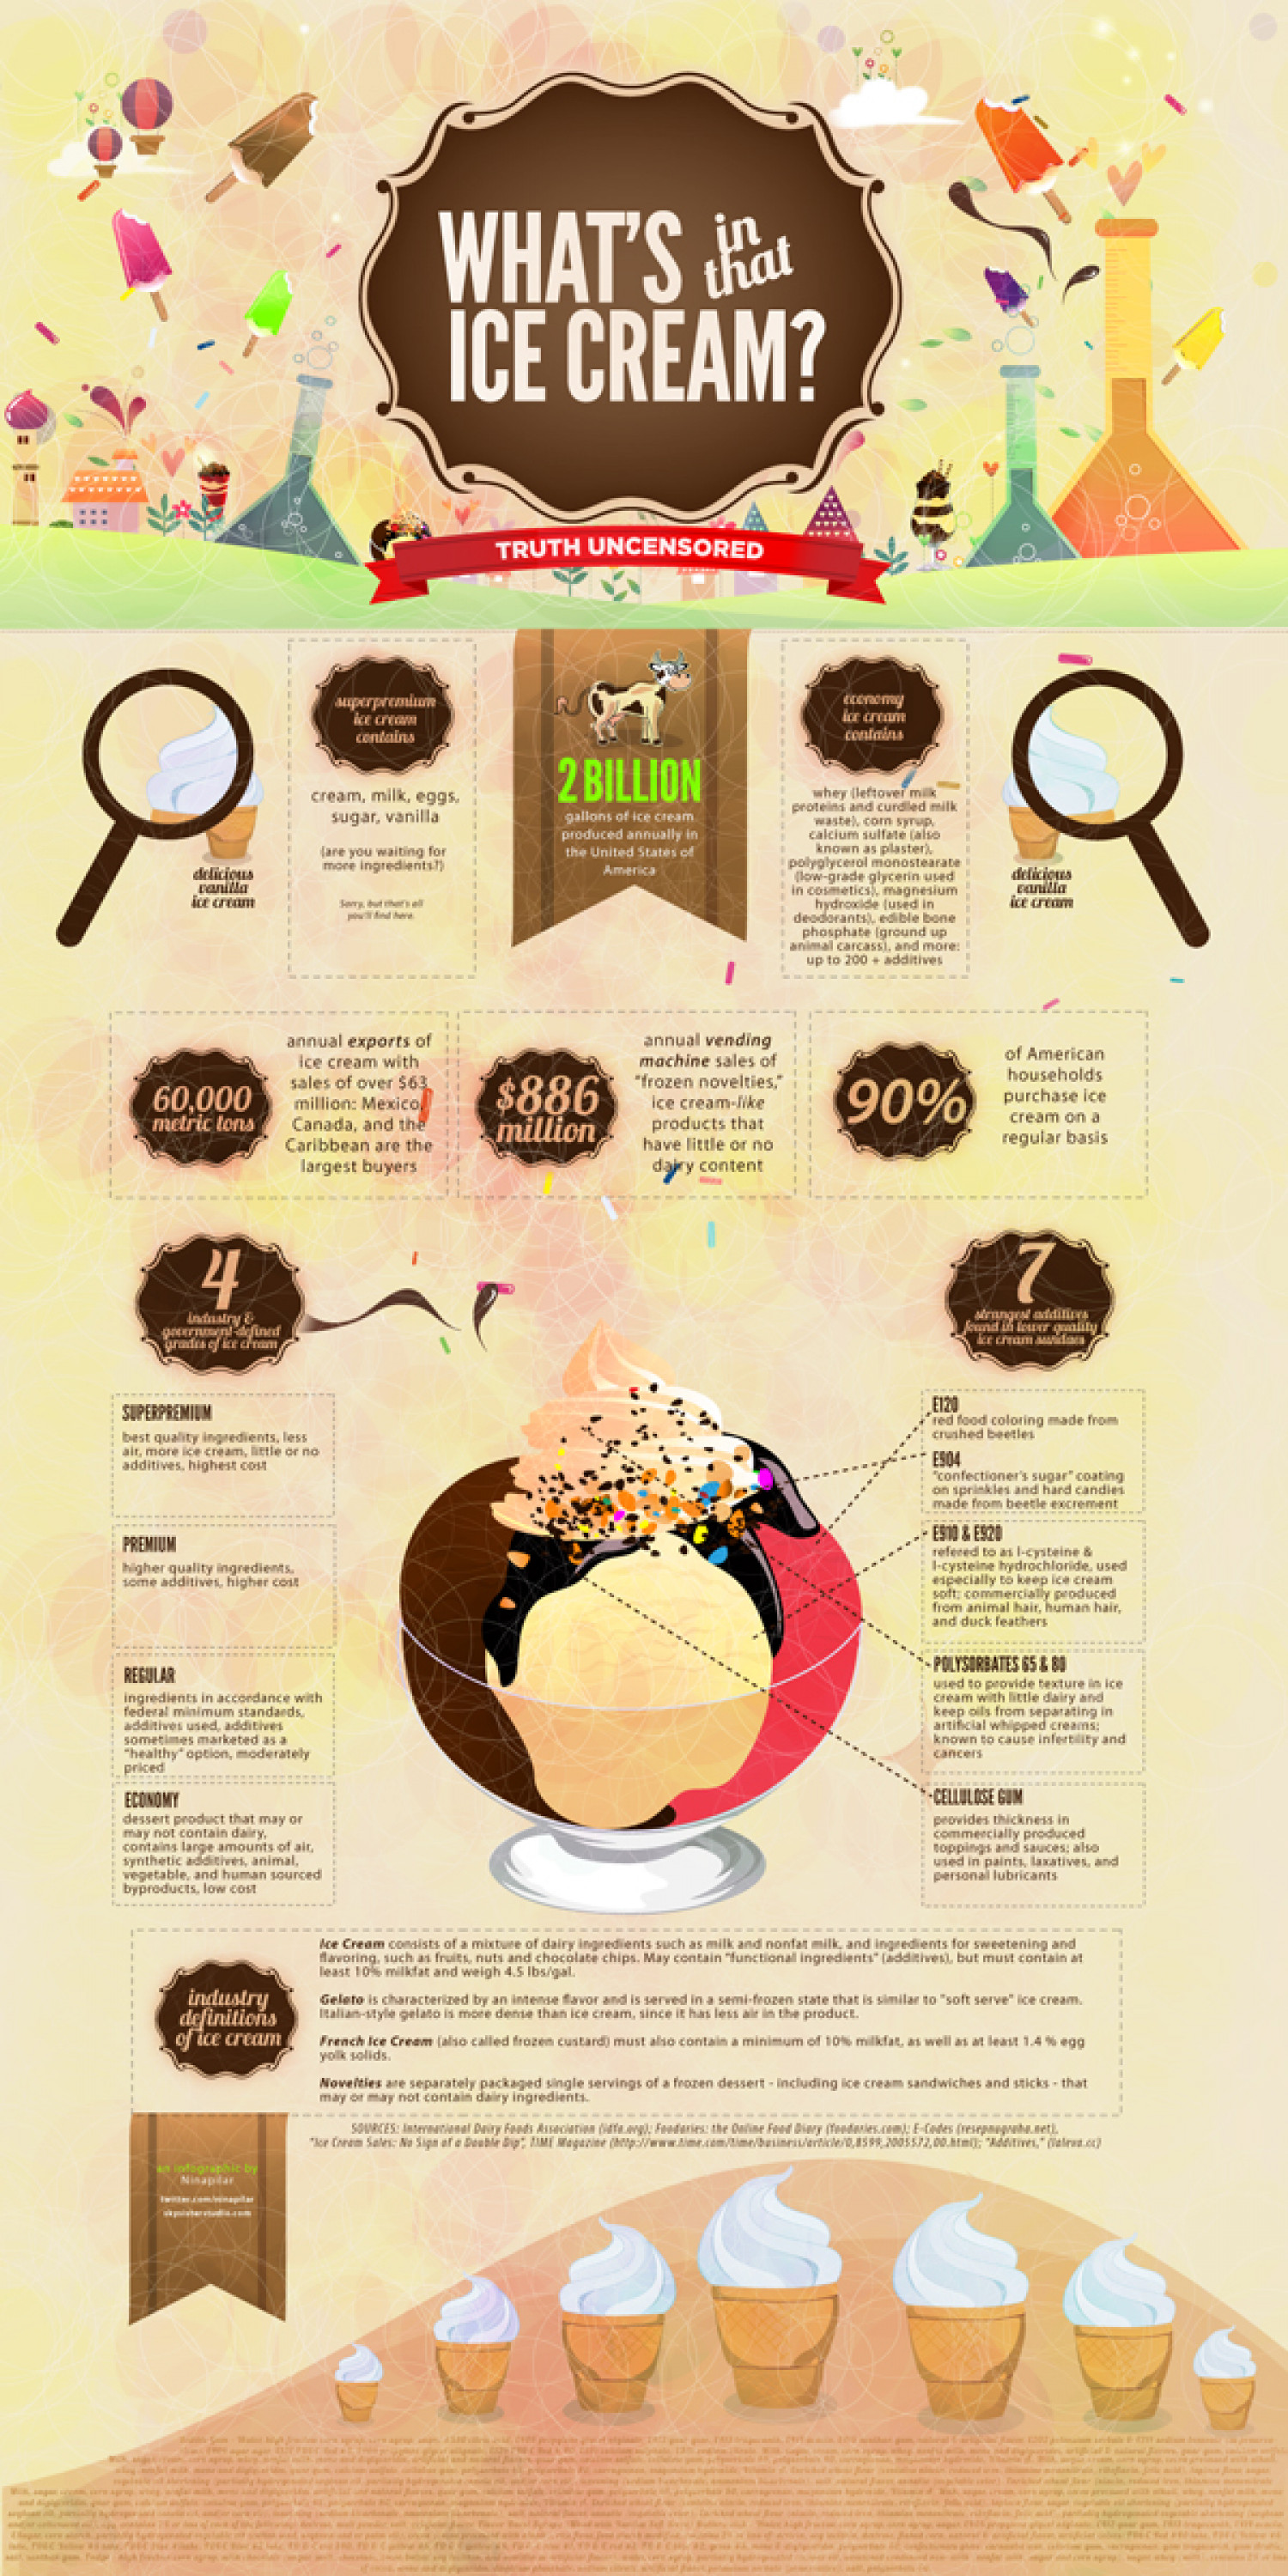 What's in that Ice Cream? Infographic